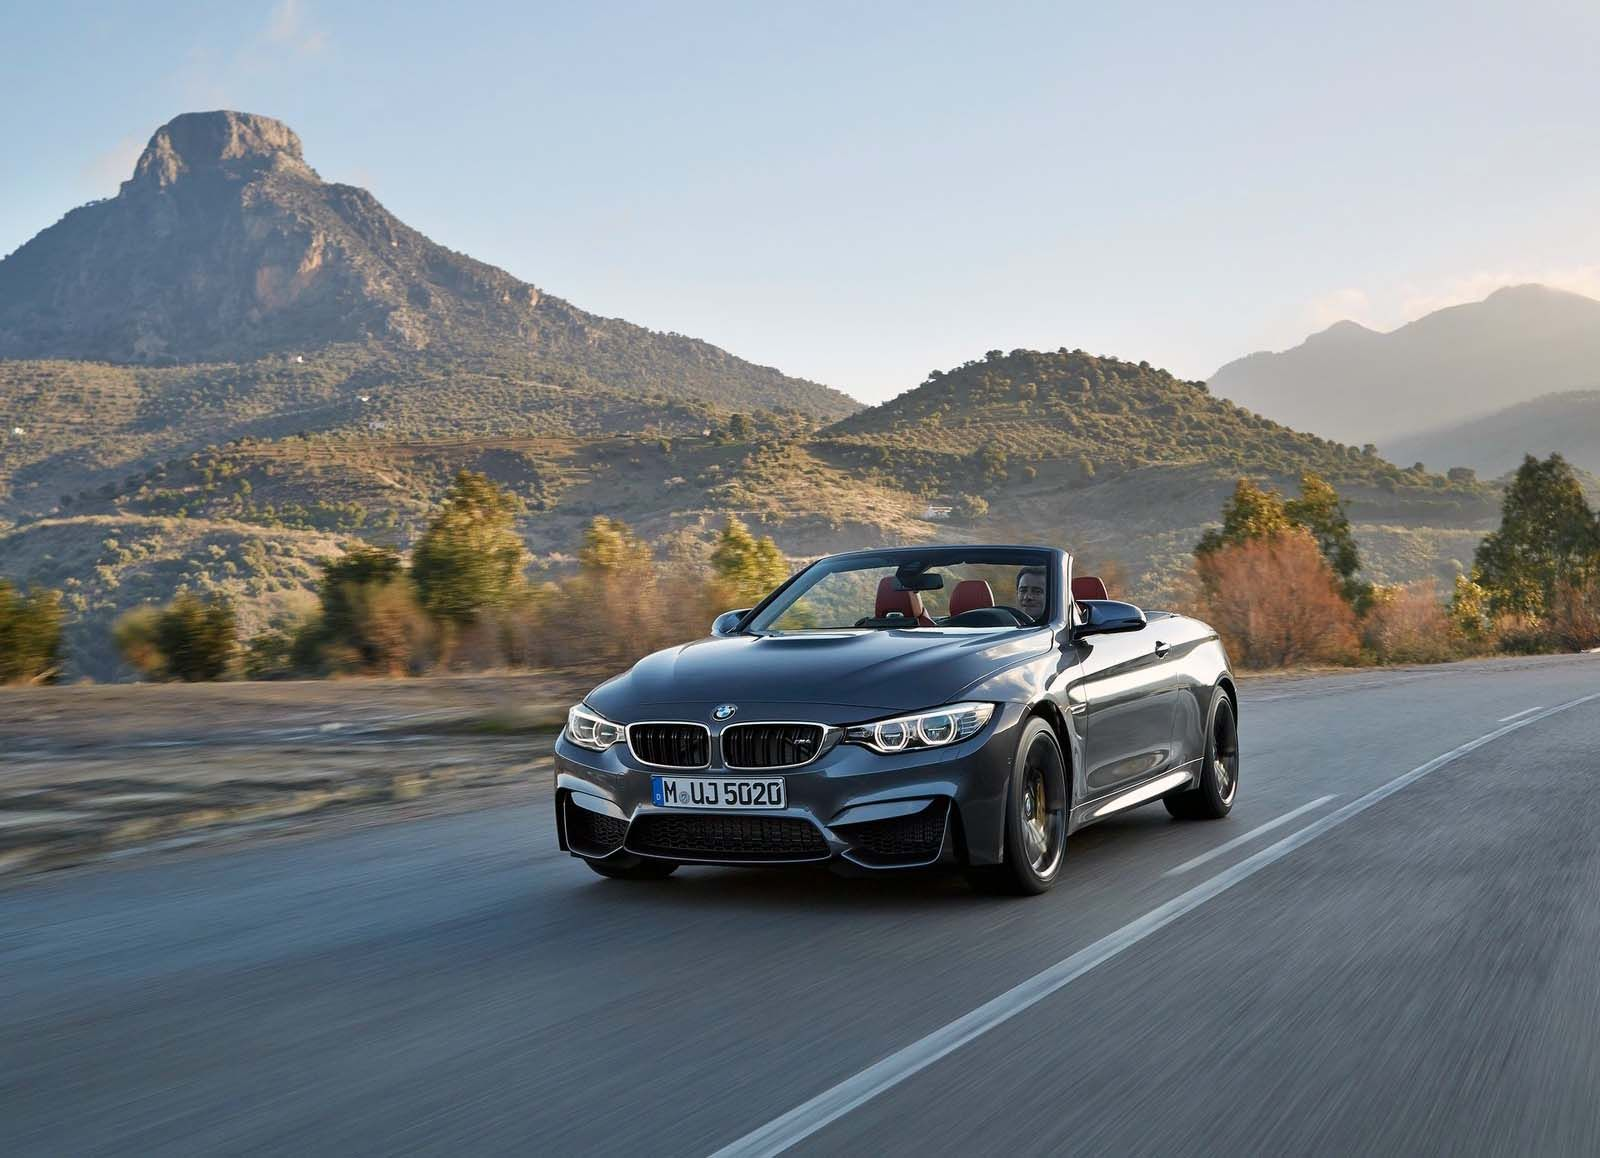 Cool new 2015 bmw m4 convertible